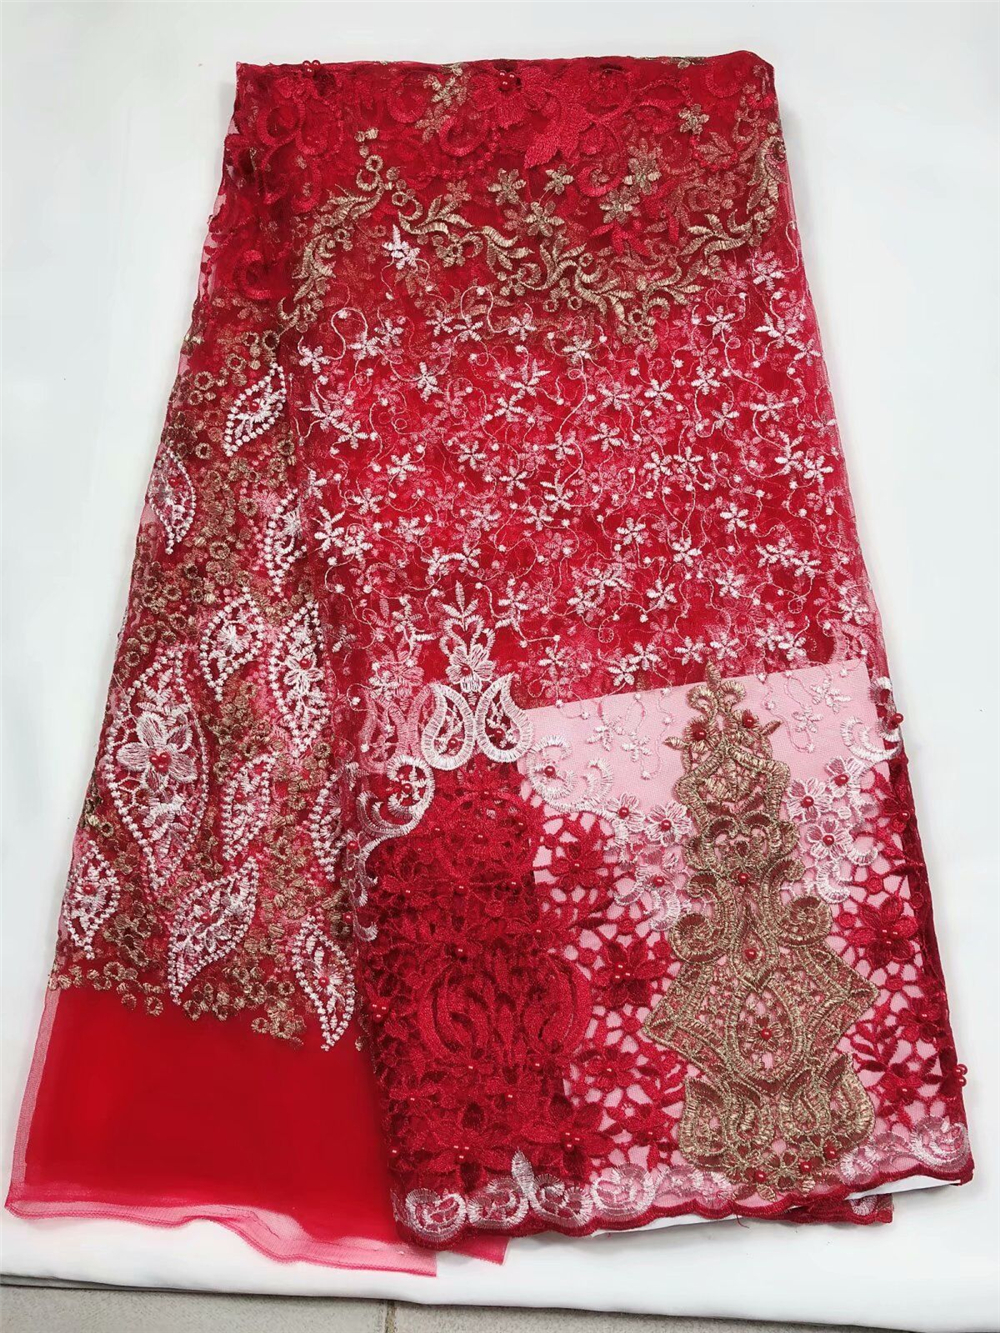 Good quality Nigerian lace fabric 5 yards beaded hot sale tulle net lace fabric red french laceGood quality Nigerian lace fabric 5 yards beaded hot sale tulle net lace fabric red french lace